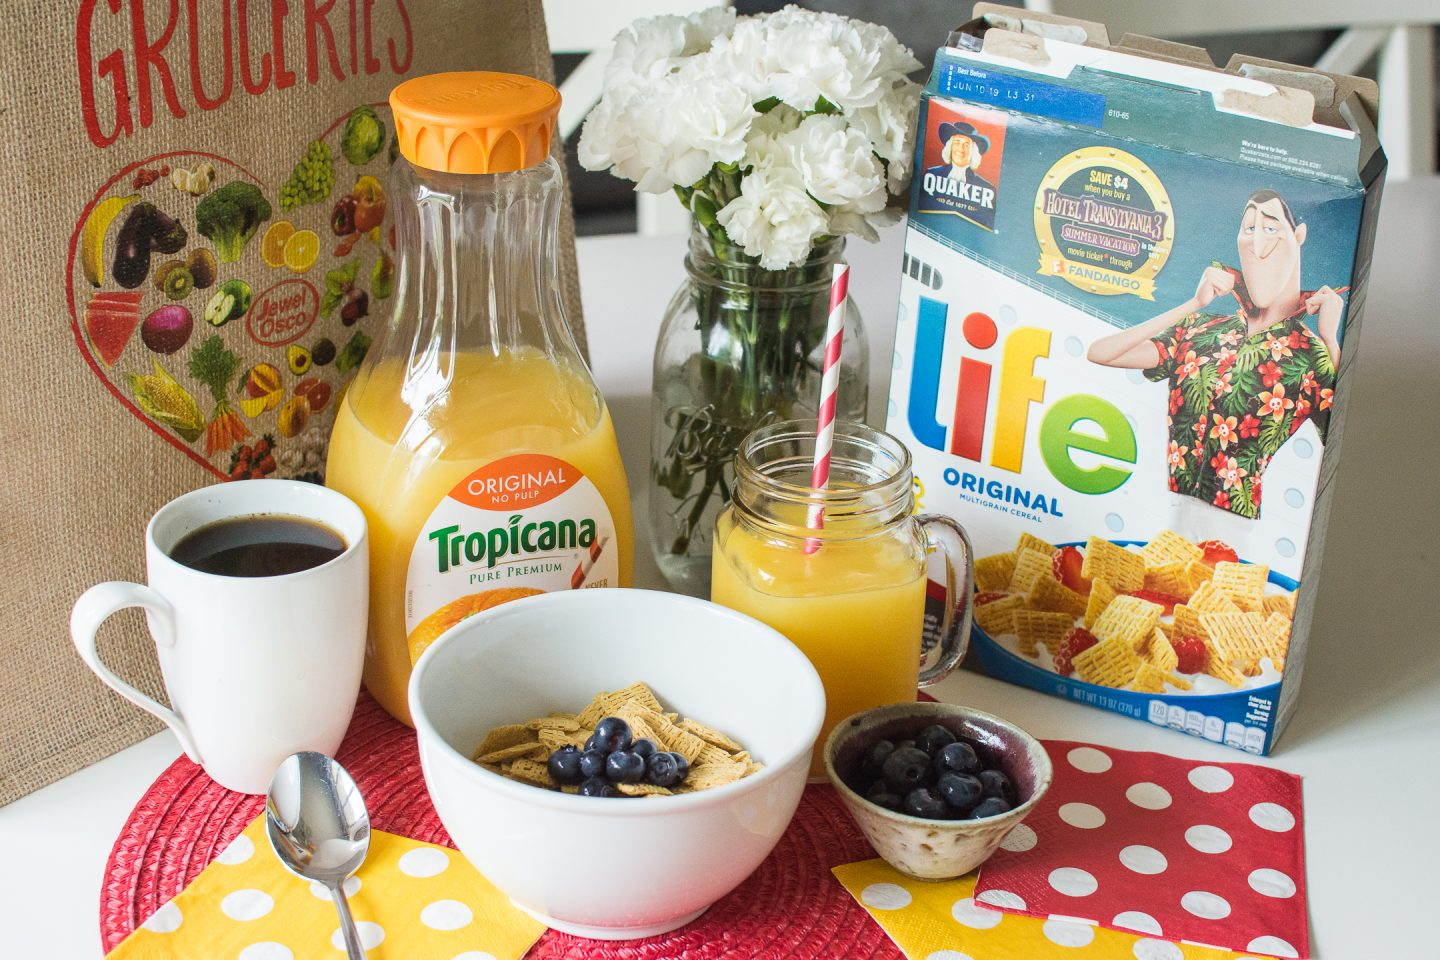 morning hacks, when kids can start helping out in the kitchen, favorite cereal, pepsi, jewel anniversary sale